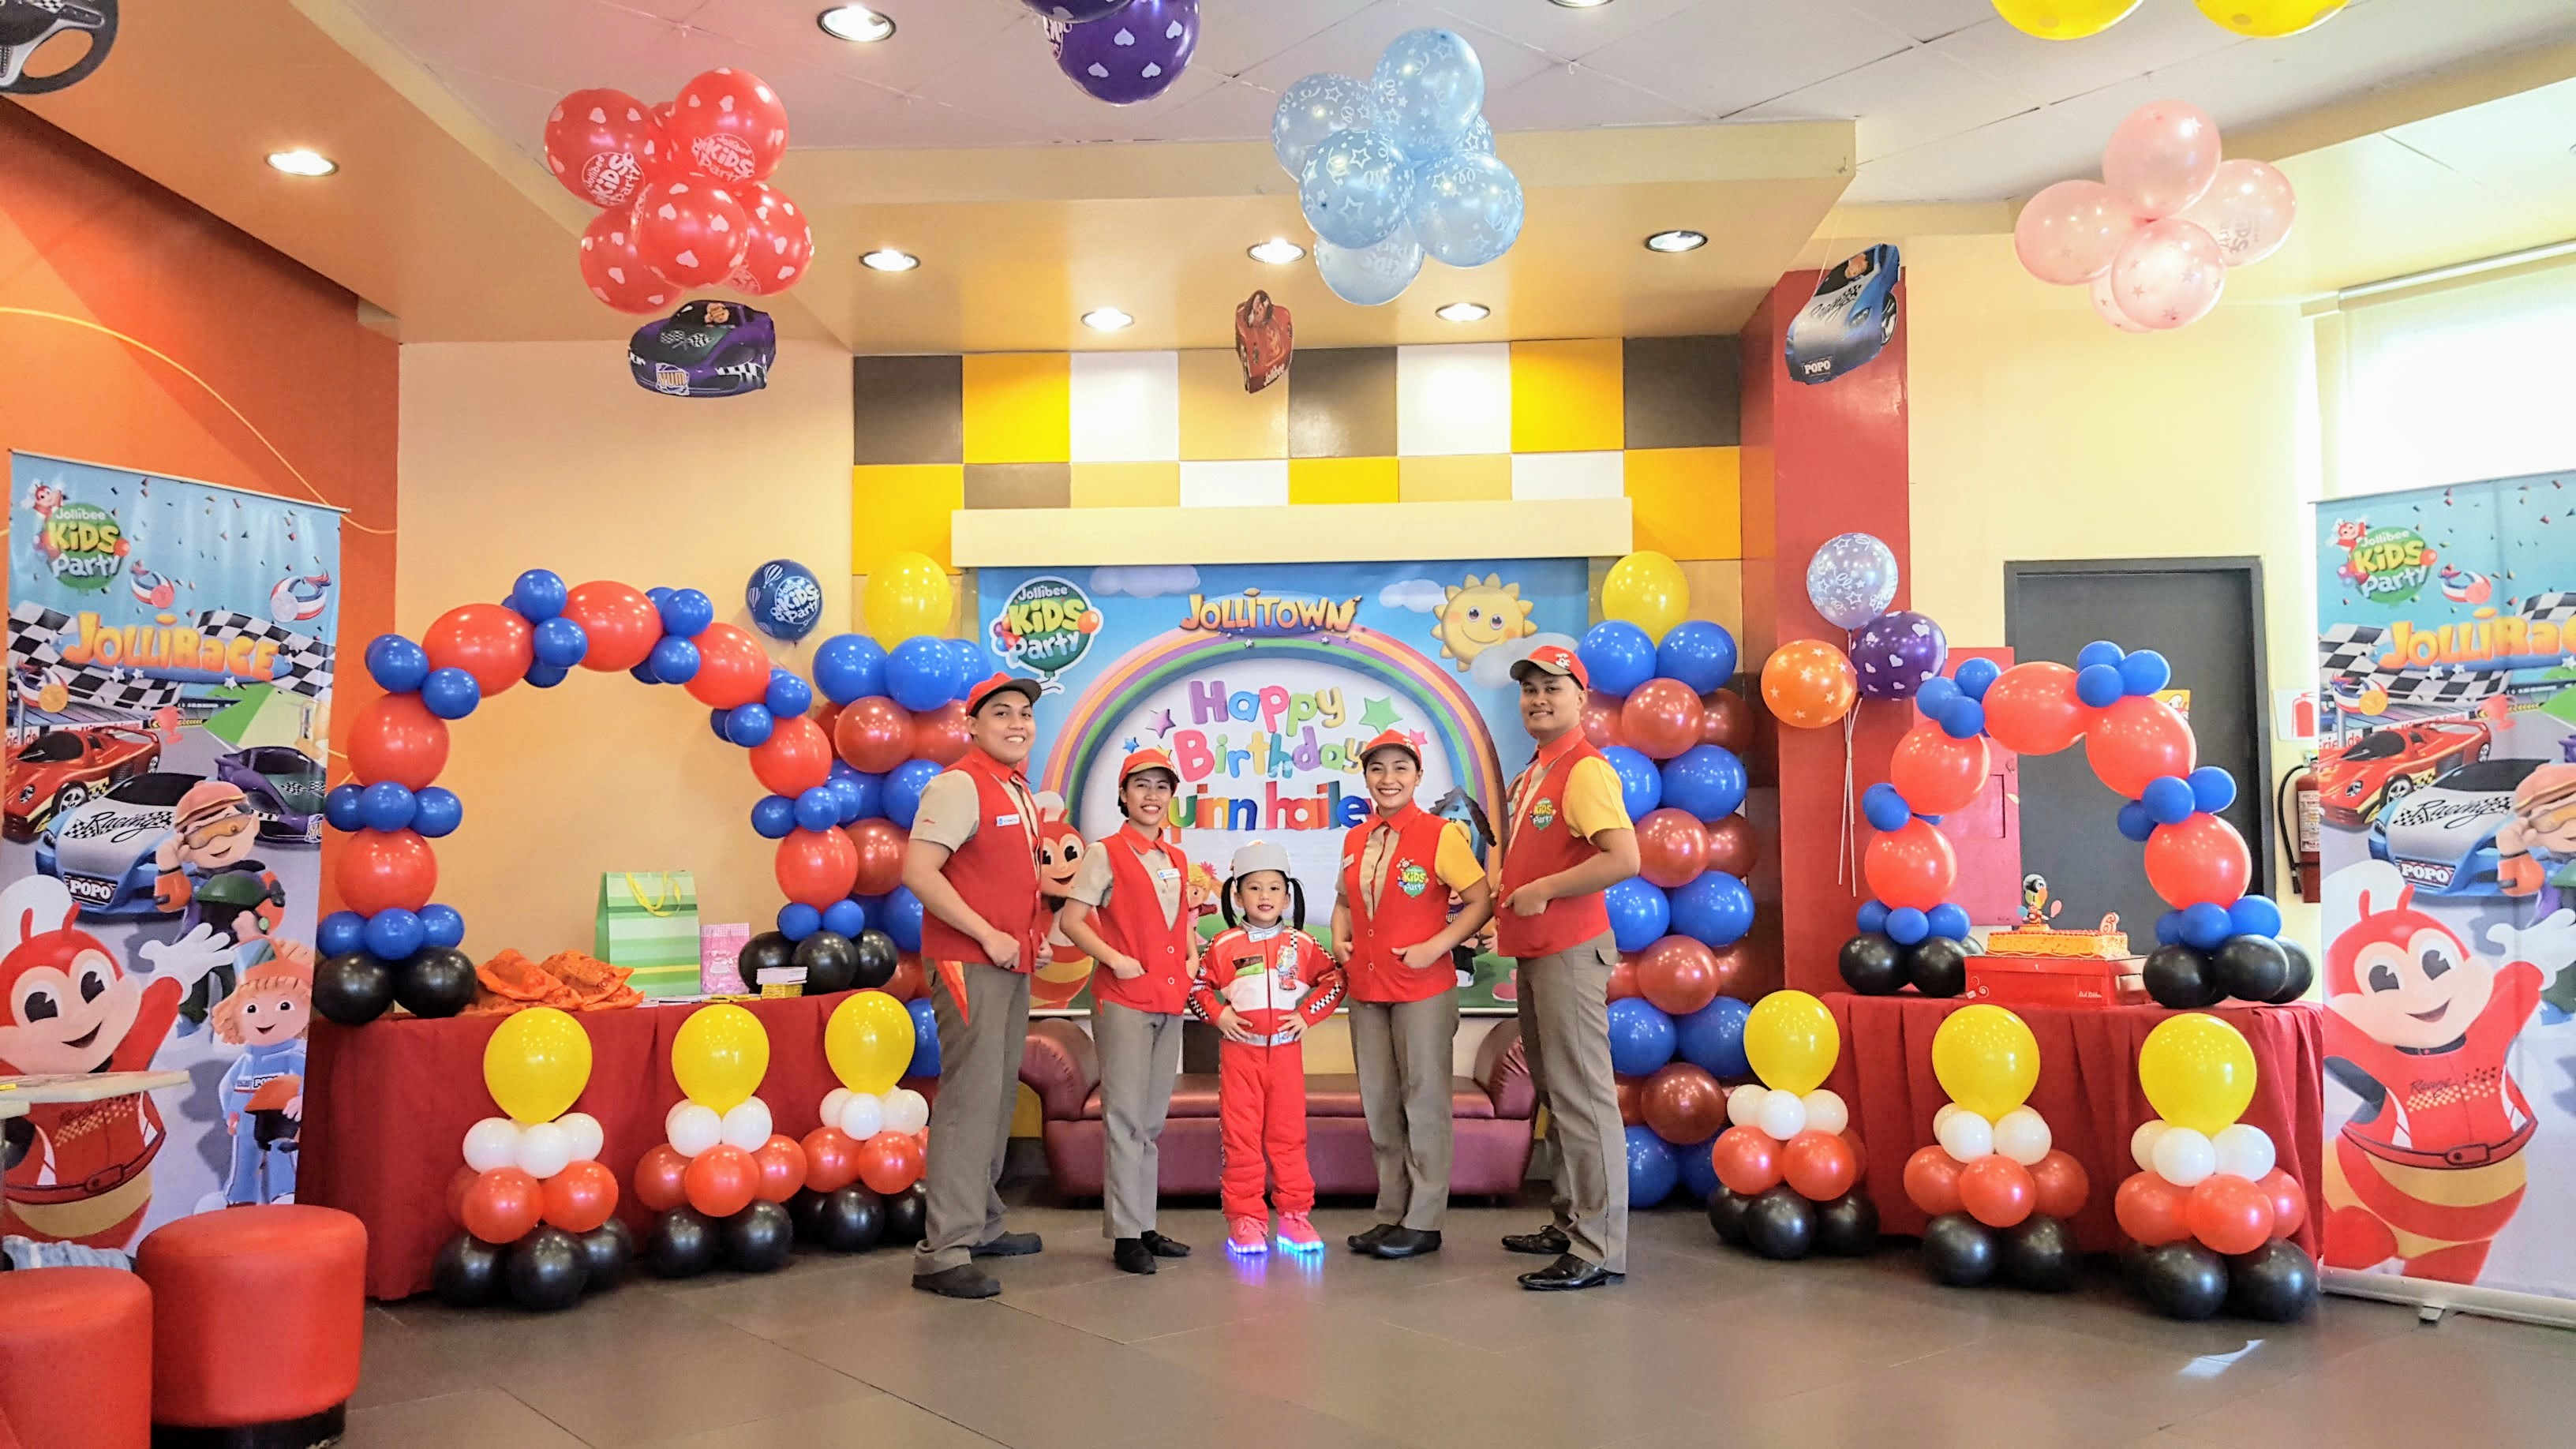 Rev up for jollibee 39 s new exciting party theme jollirace for Balloon decoration for birthday party philippines